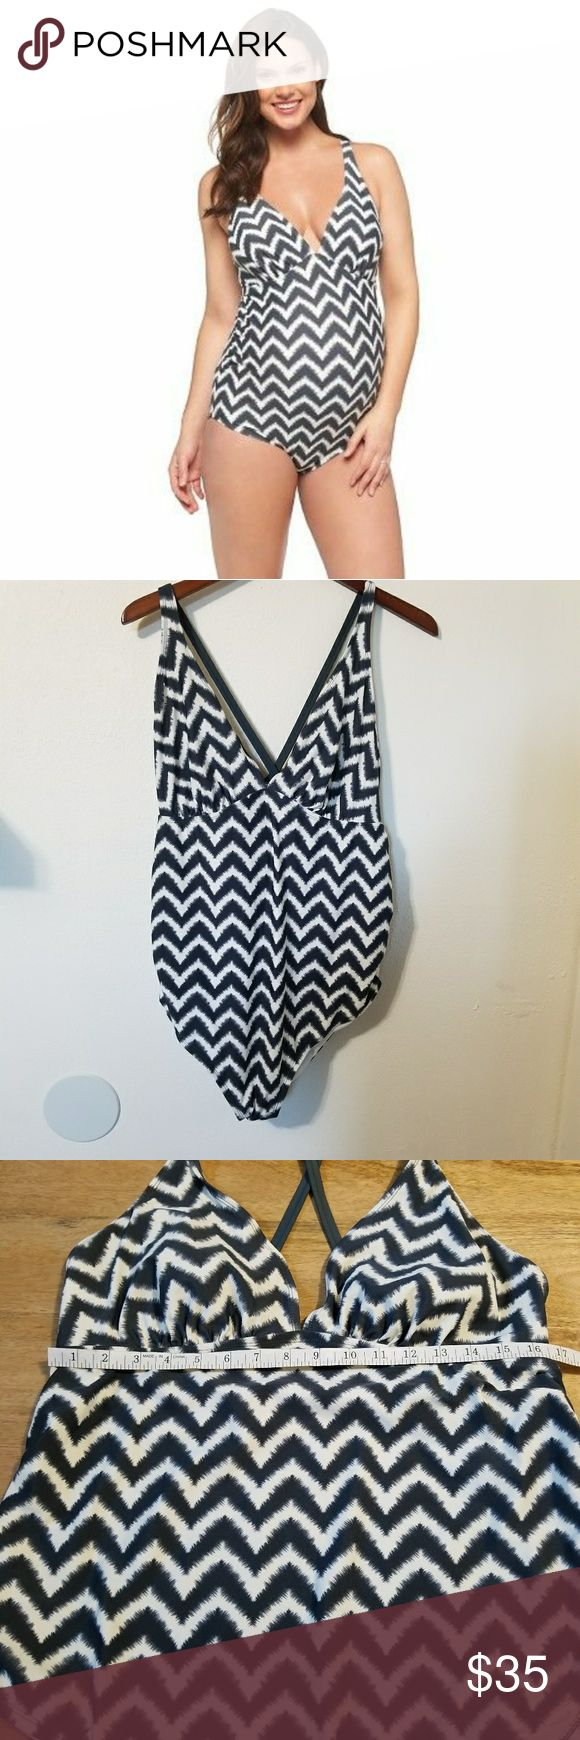 Liz Lange Chevron Maternity One Piece Swimsuit XL Chevron printed swimwear one piece with cross back straps. Ruched sides. Tagged as a size large, please see measurement photos. Like new condition. Liz Lange Swim One Pieces